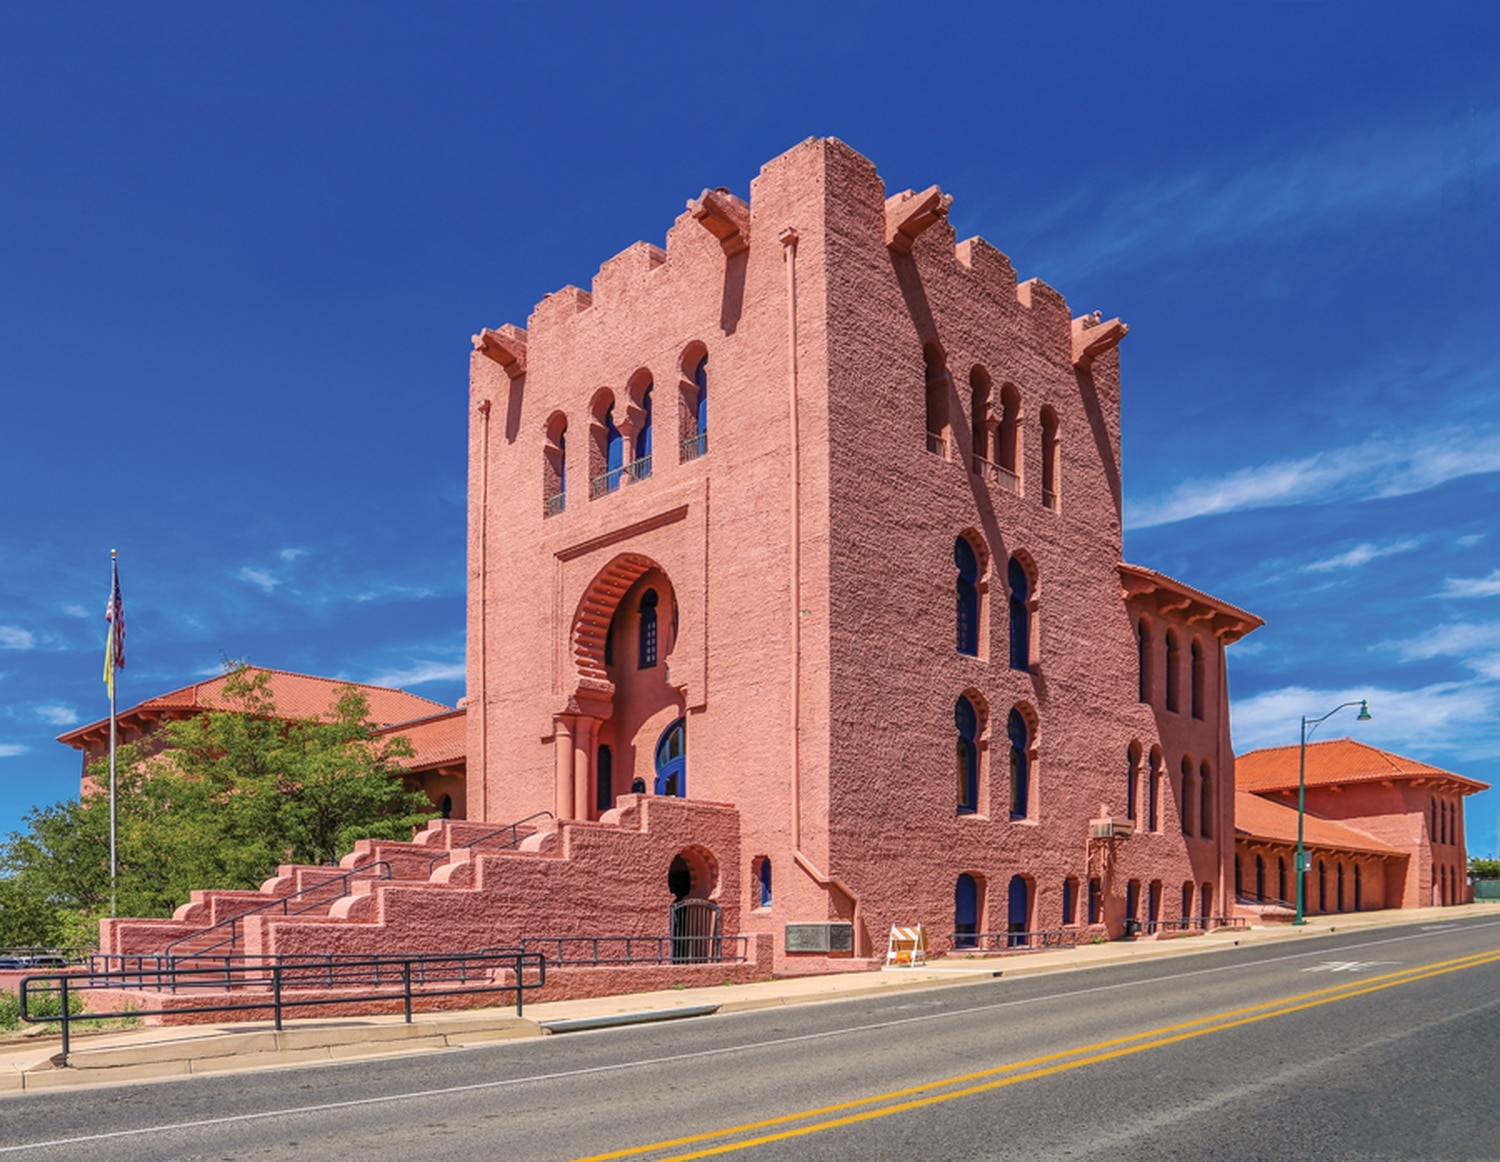 The 45,000-square-foot building was completed in 1912 and designed in the Moorish architectural style. It's now available for rent as an event venue.